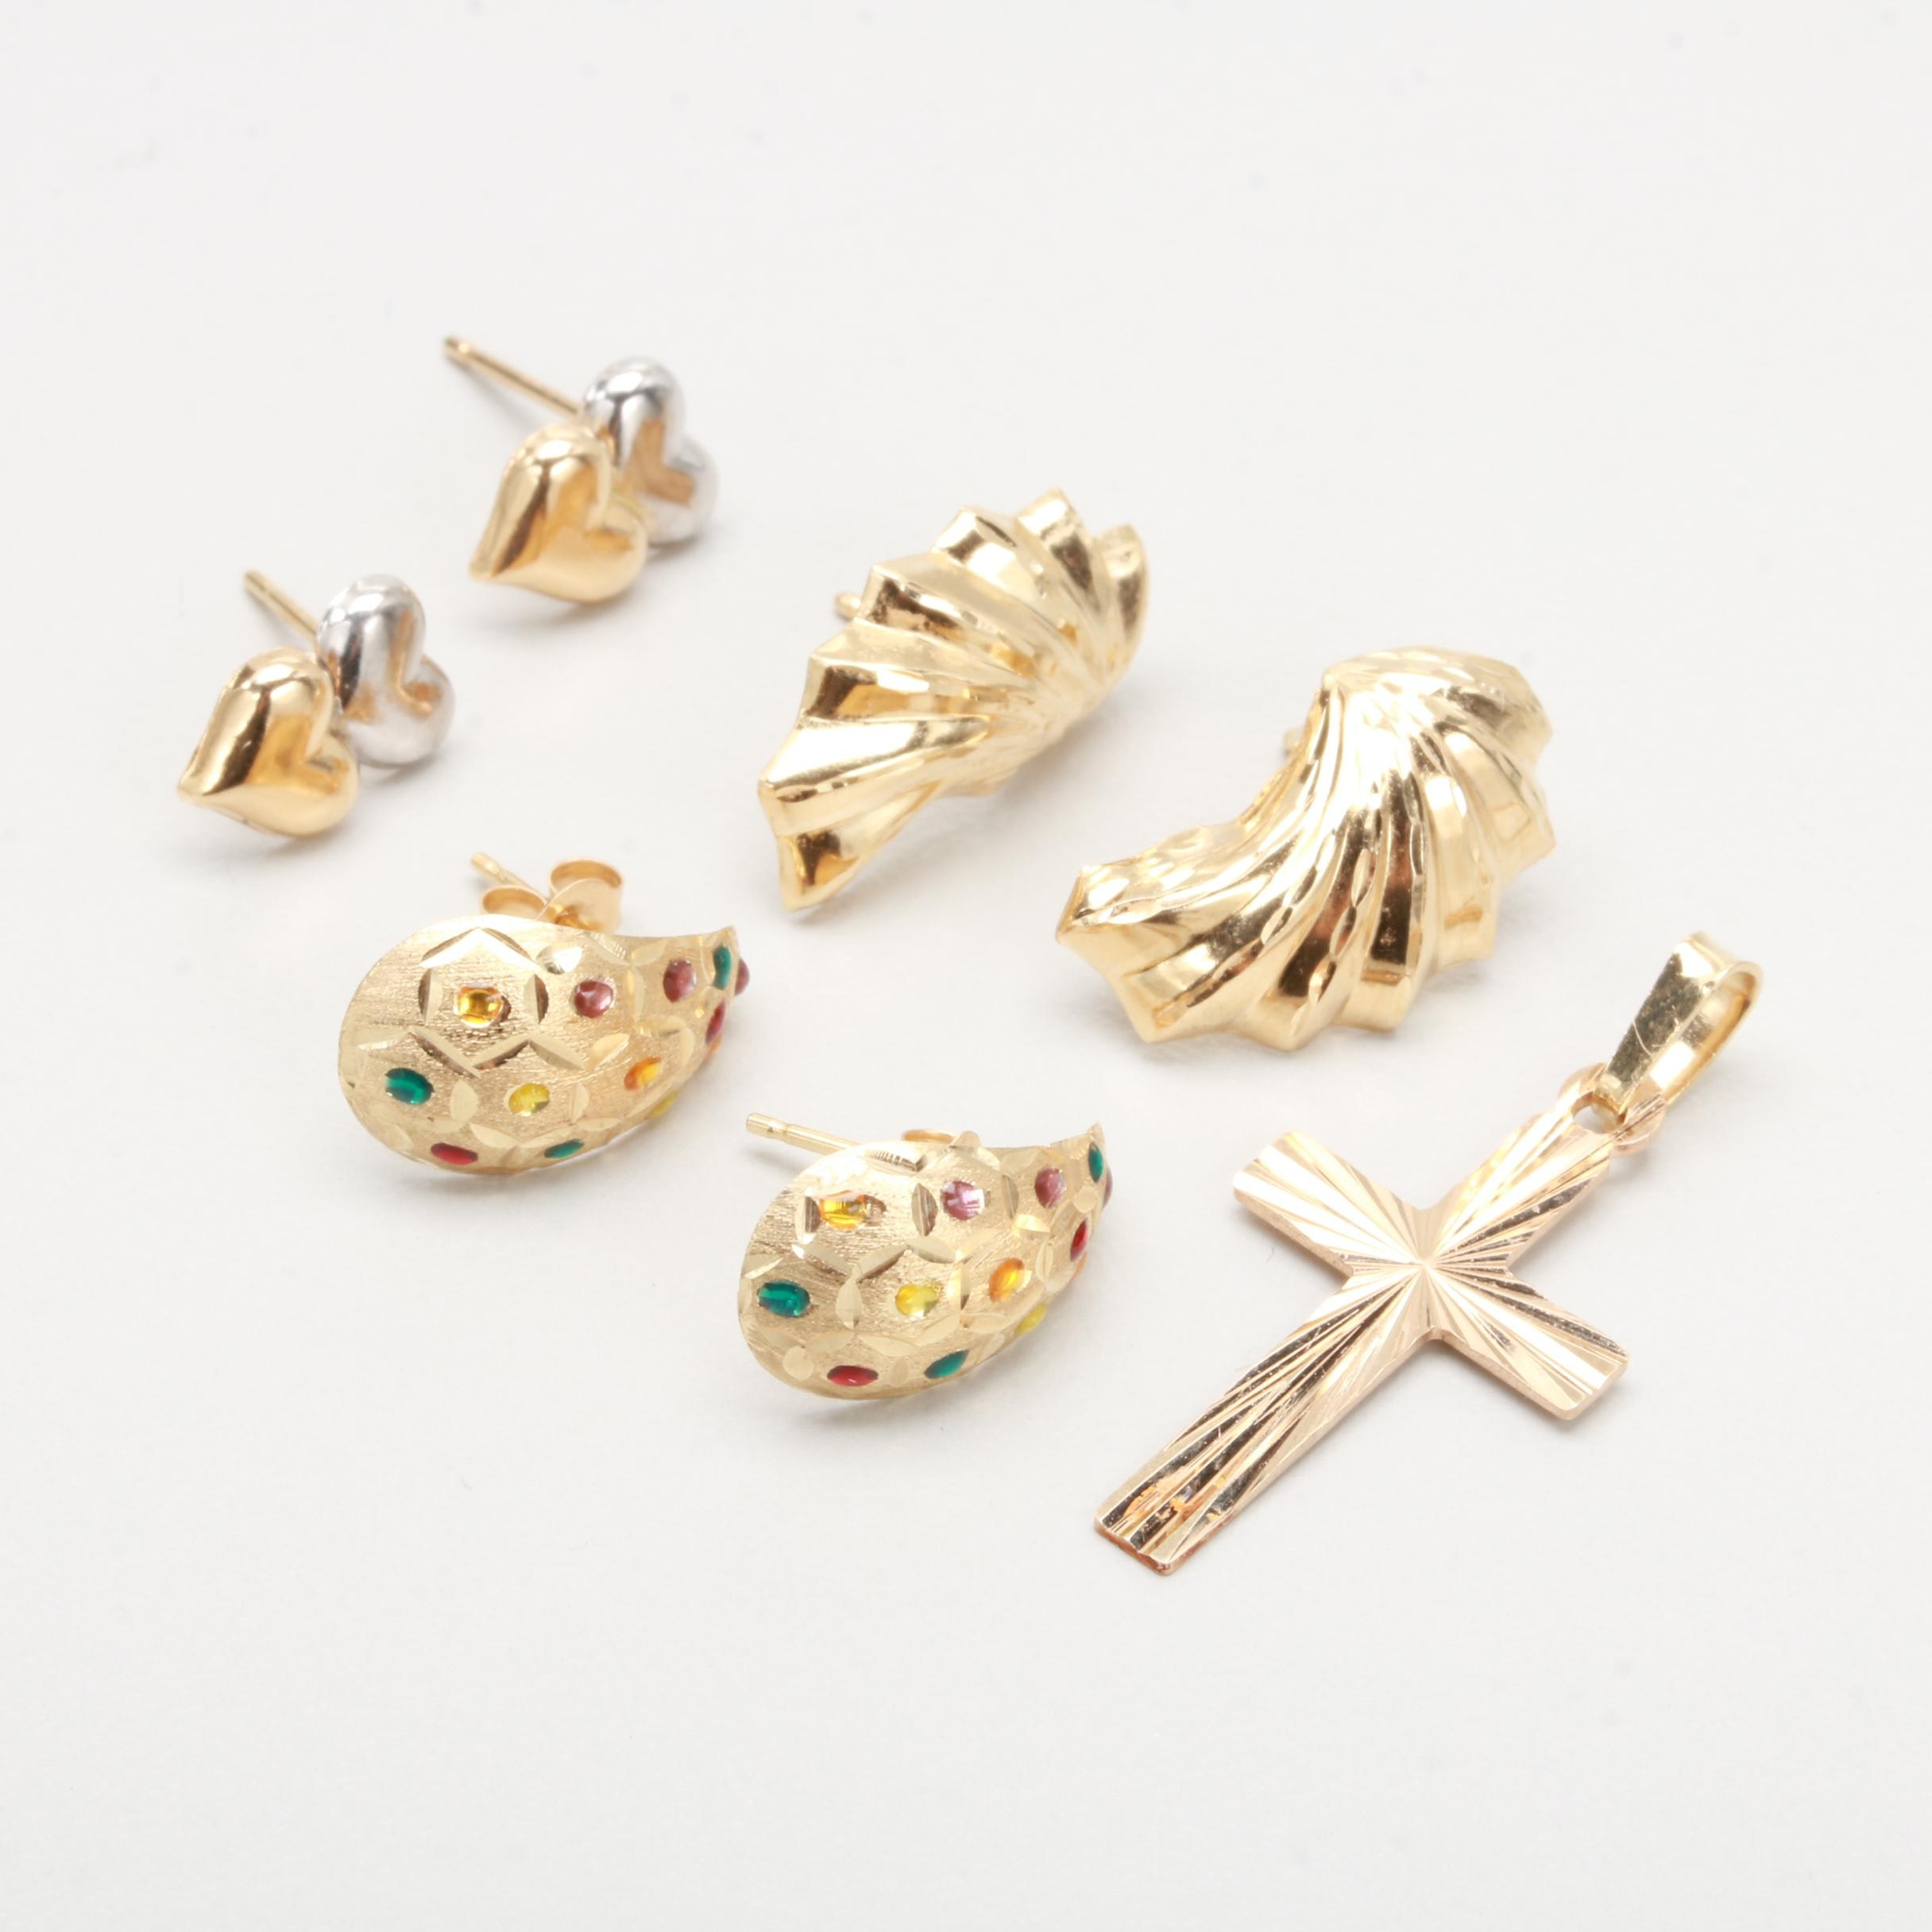 14K Yellow Gold and Enamel Earrings With 10K Yellow Gold Cross Pendant